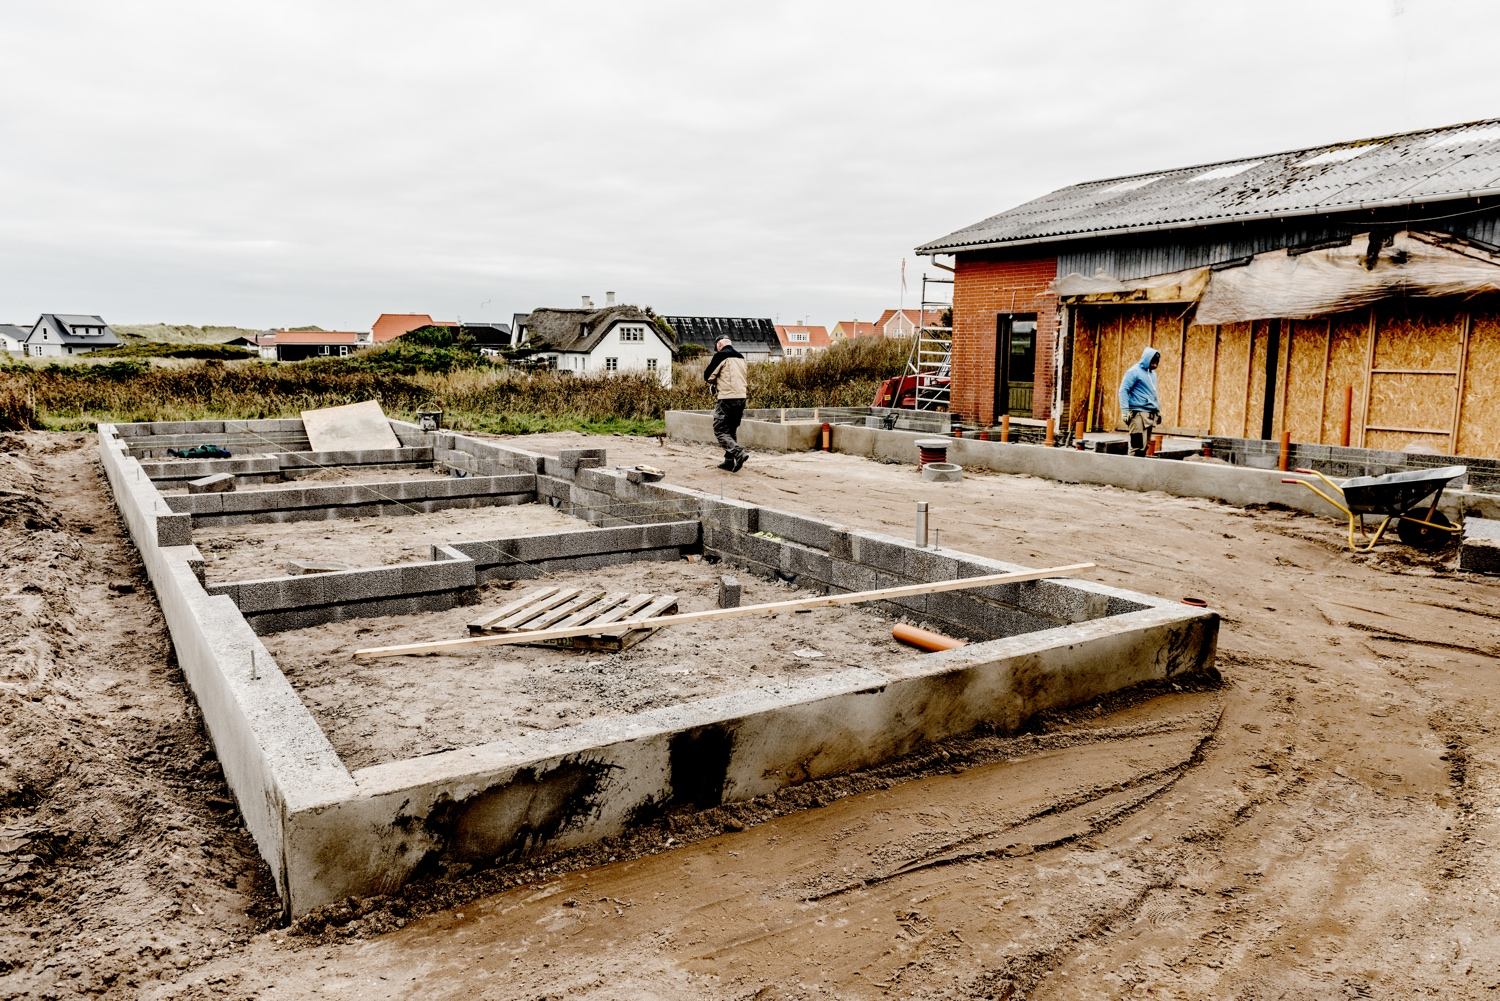 Concreting-nearly-done_Ørhagevej-84.jpg